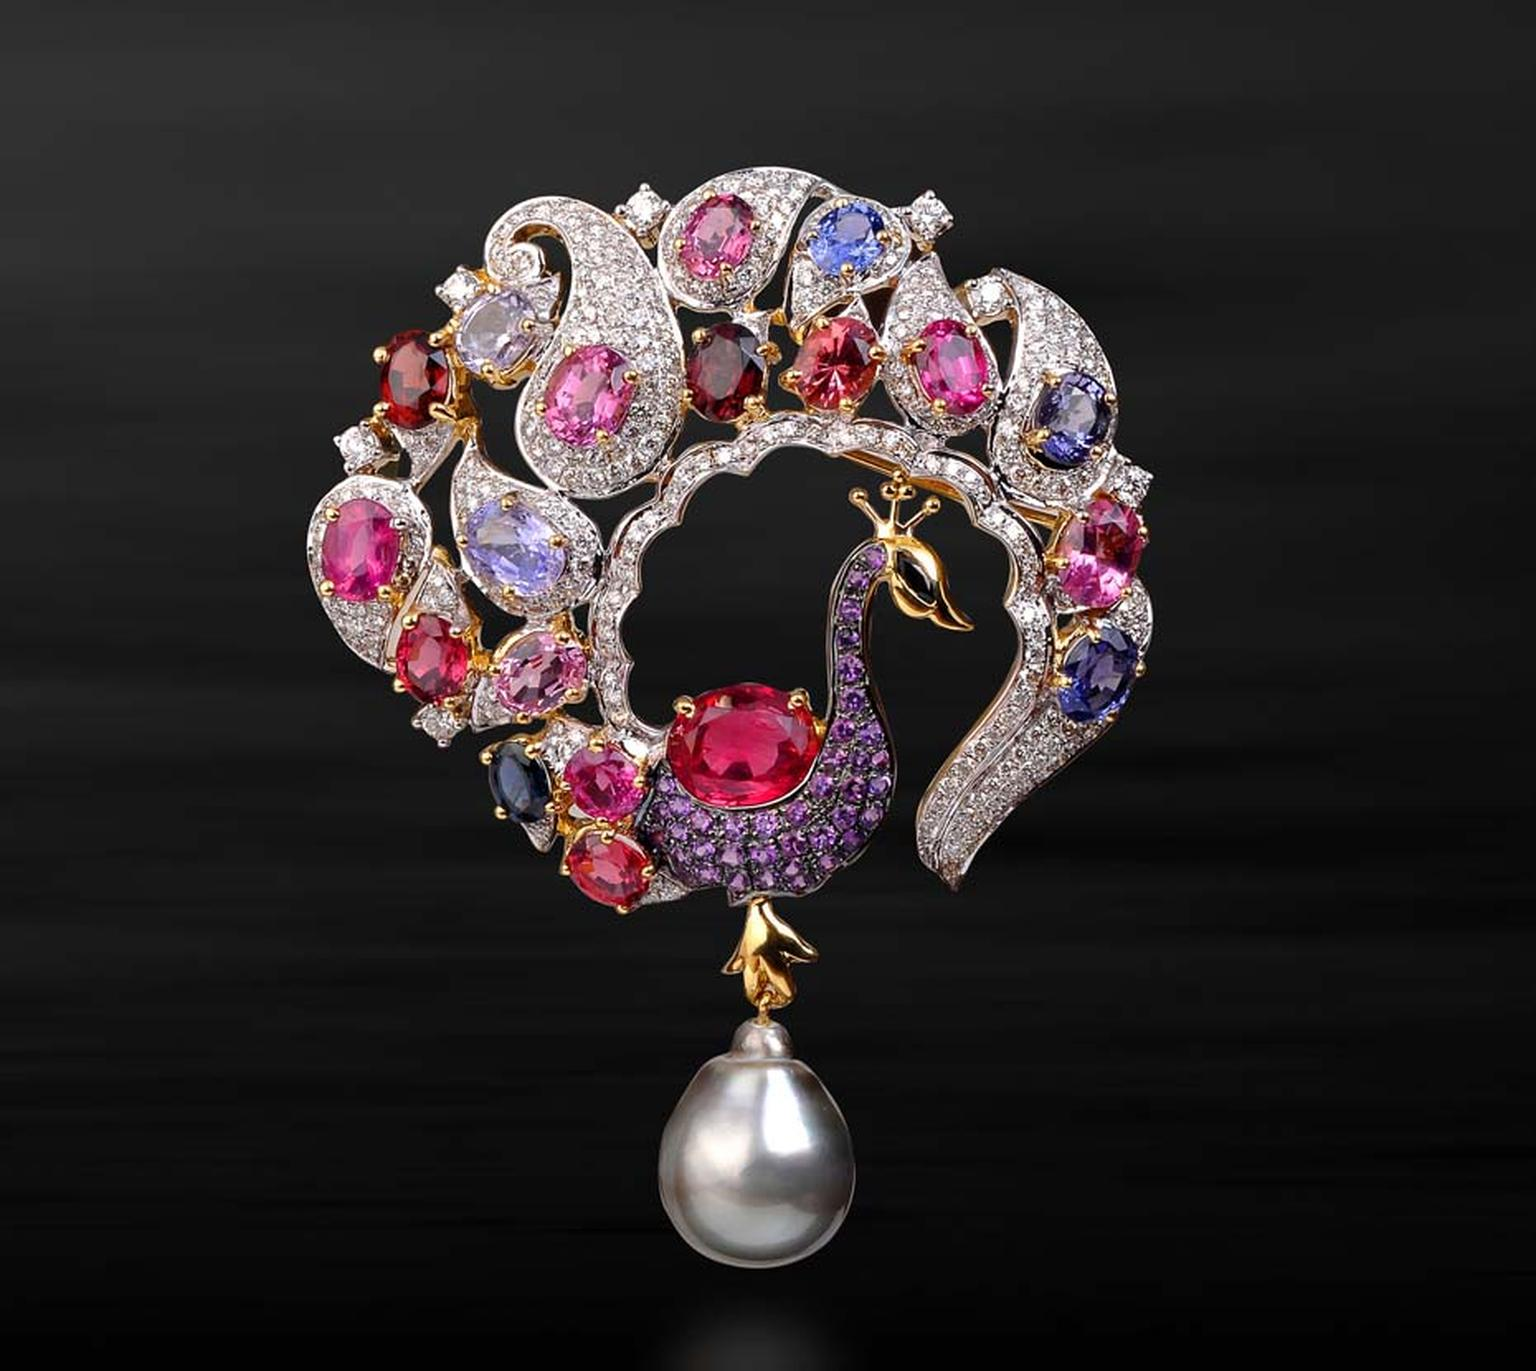 Farah Khan's peacock brooch, set with a pearl, diamonds and multi-coloured gemstones.